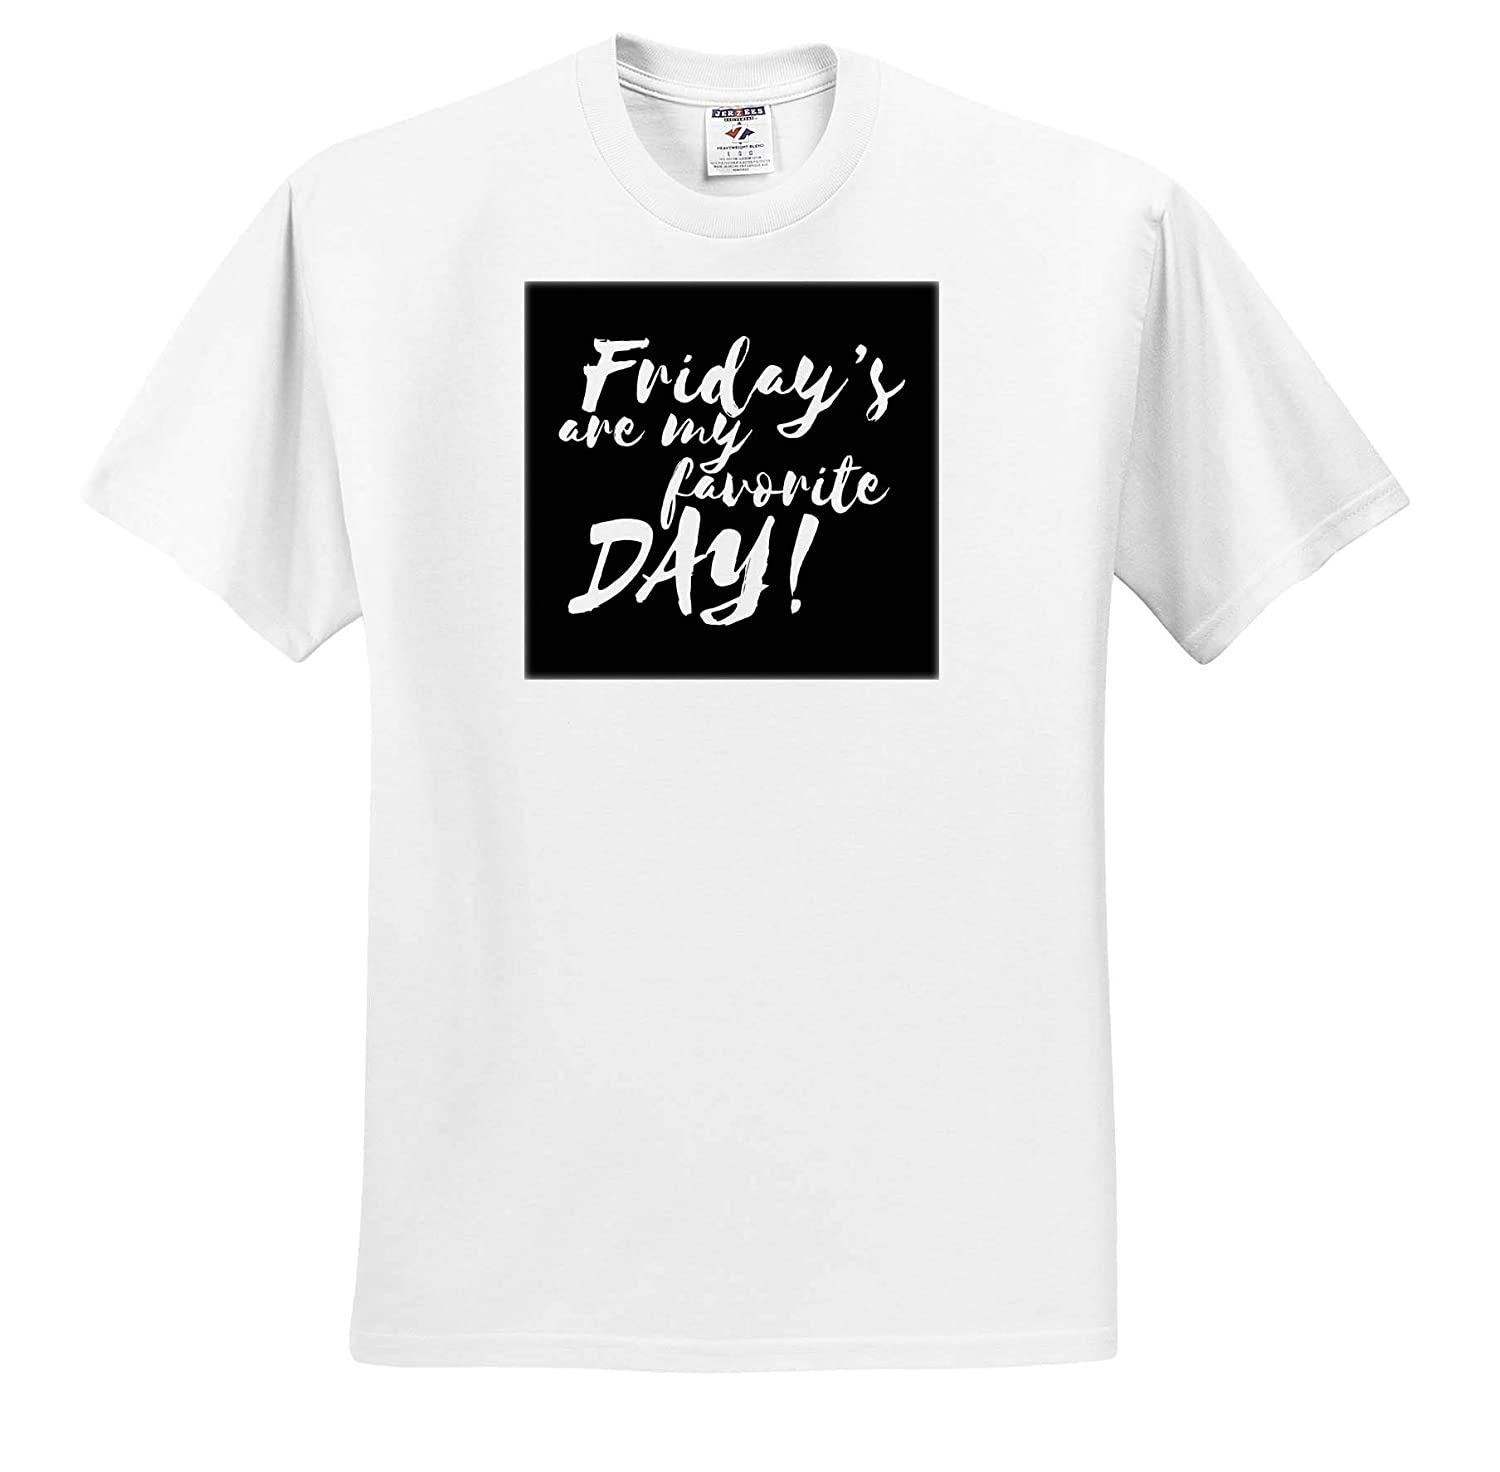 3dRose Sven Herkenrath Quotes T-Shirts Friday is My Favorite Day Happy Weekend